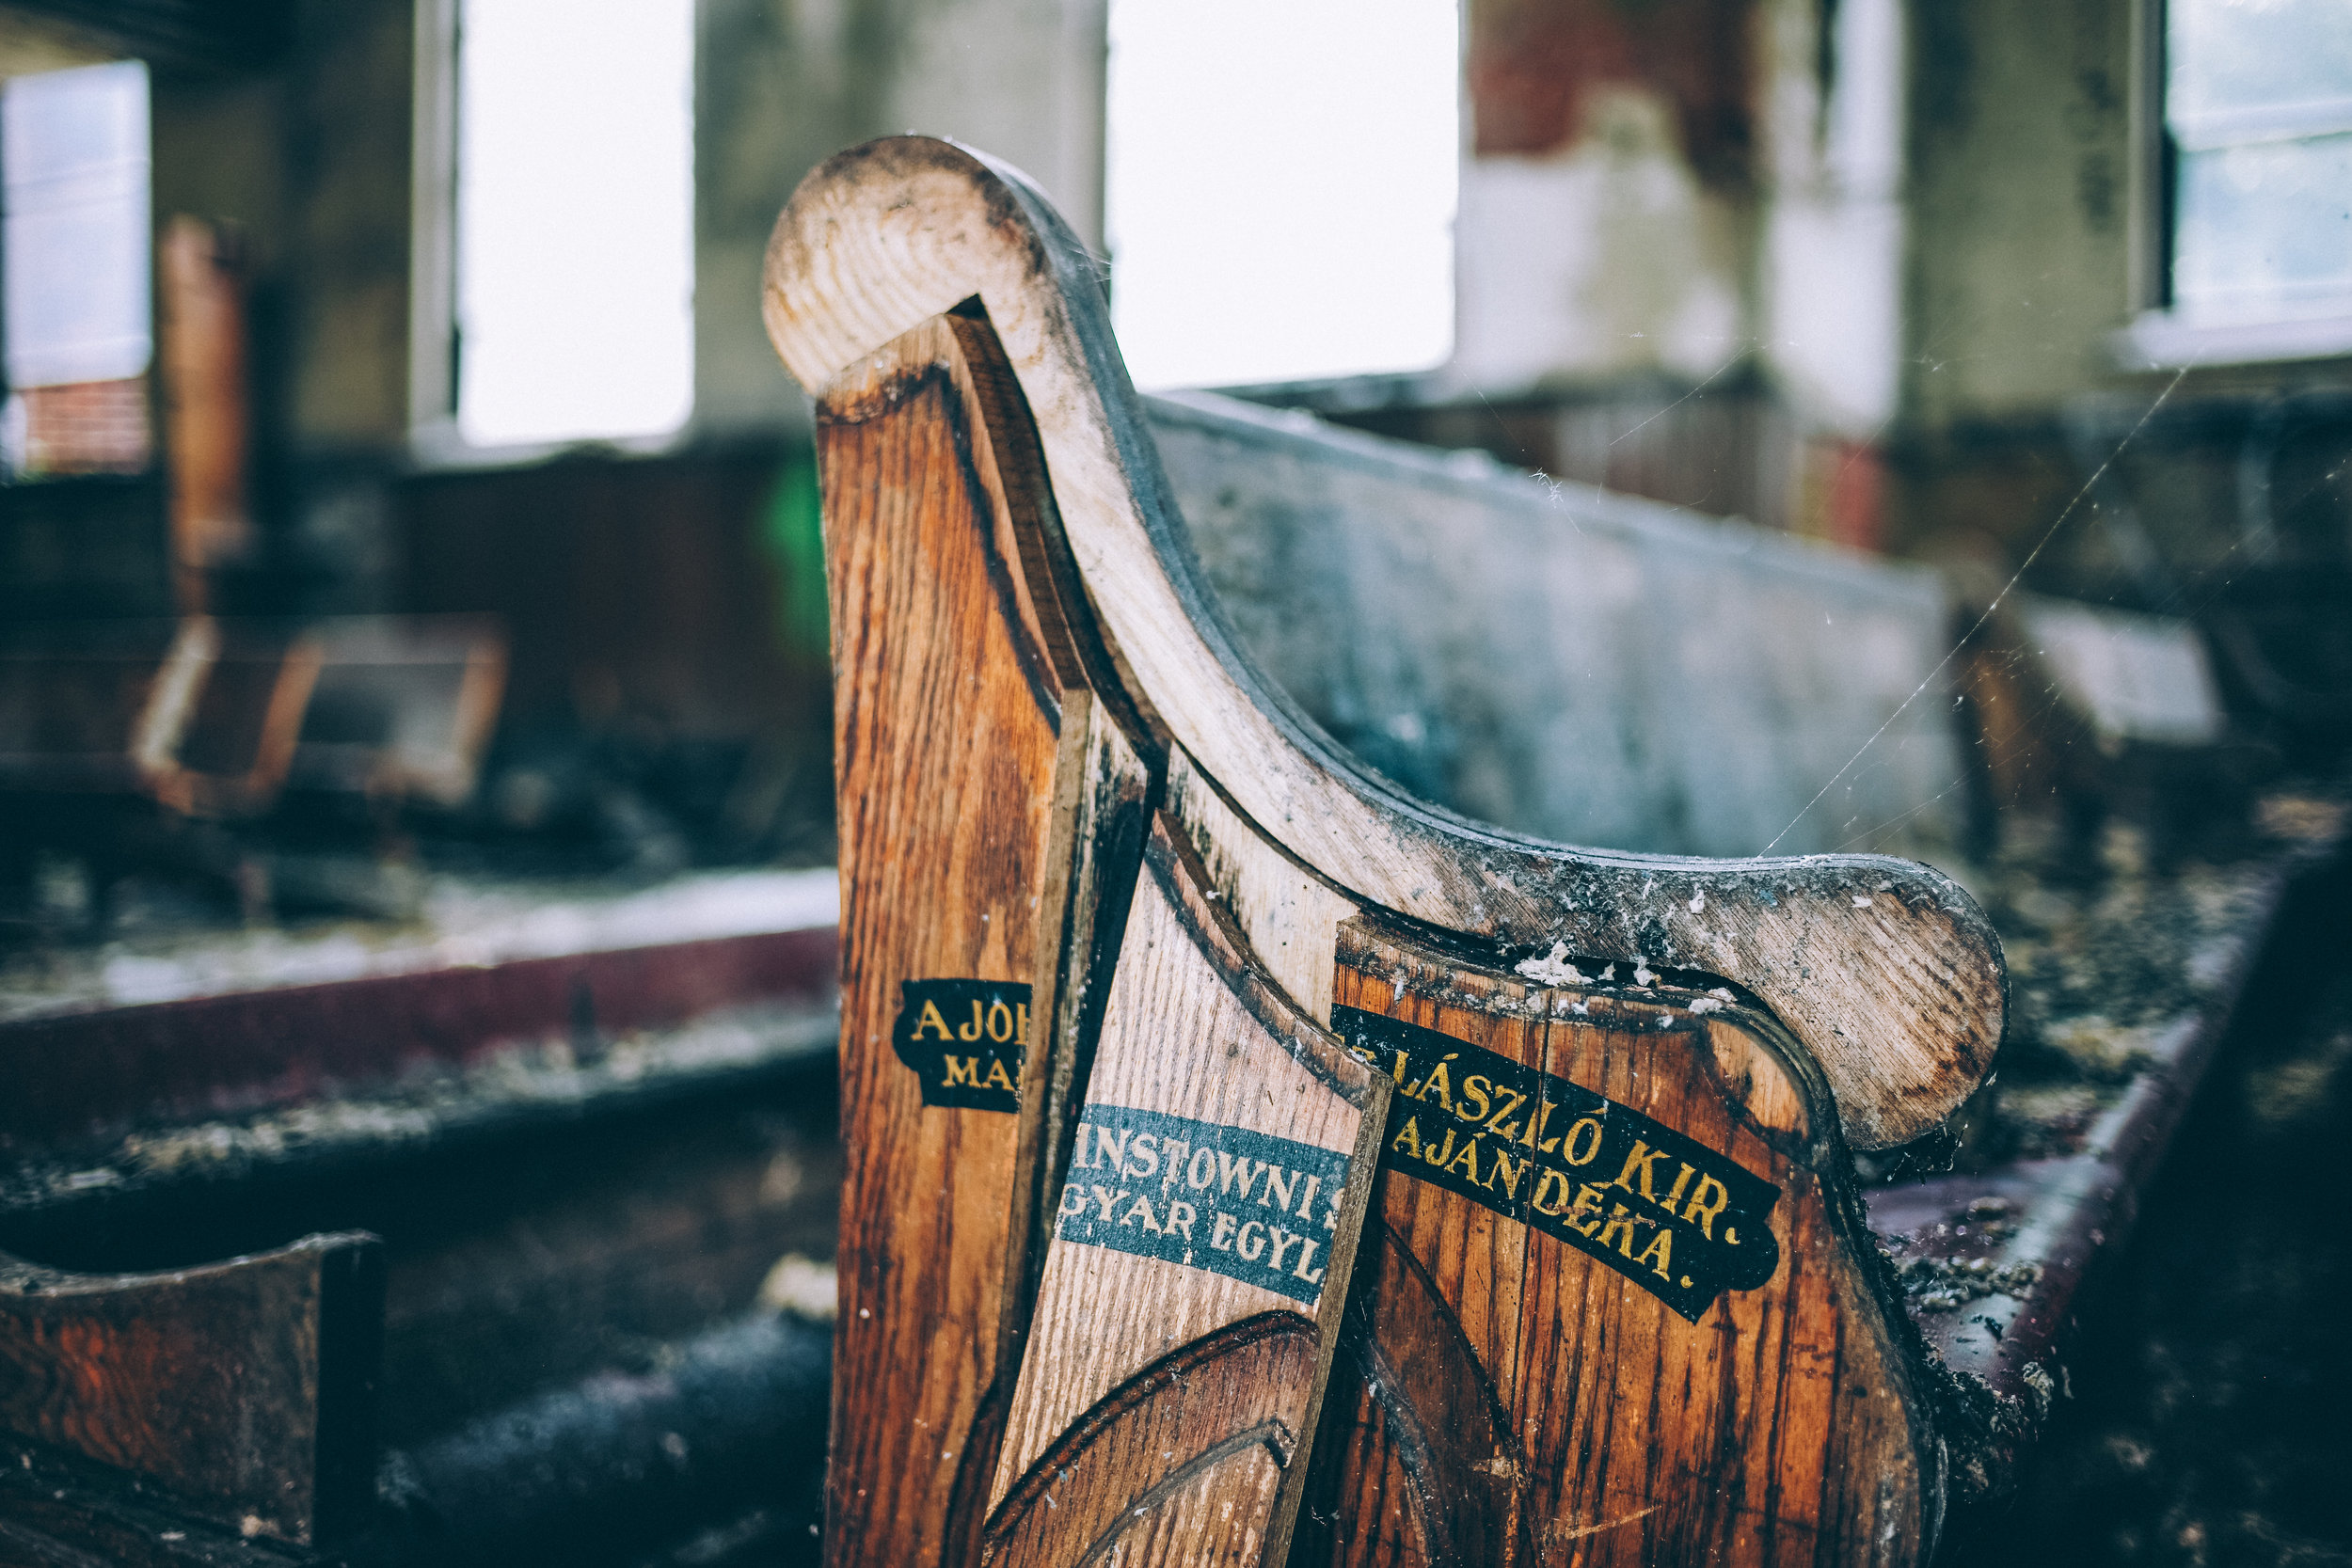 pictured above: Hungarian lettering painted on the church pews.